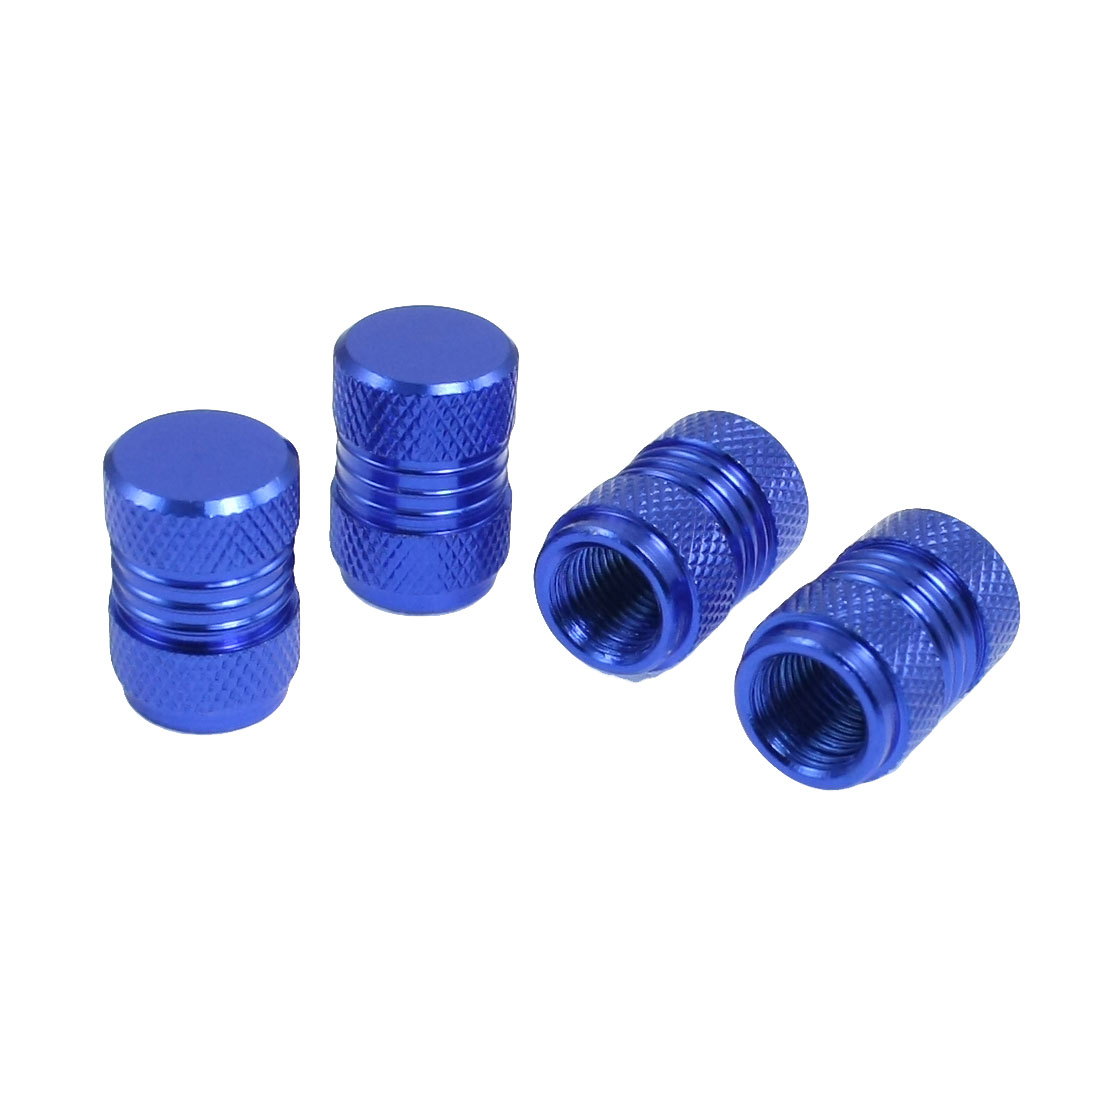 4 Pcs Alloy 7mm Thread Car Bike Tyre Tire Valve Stem Caps Covers Royal Blue